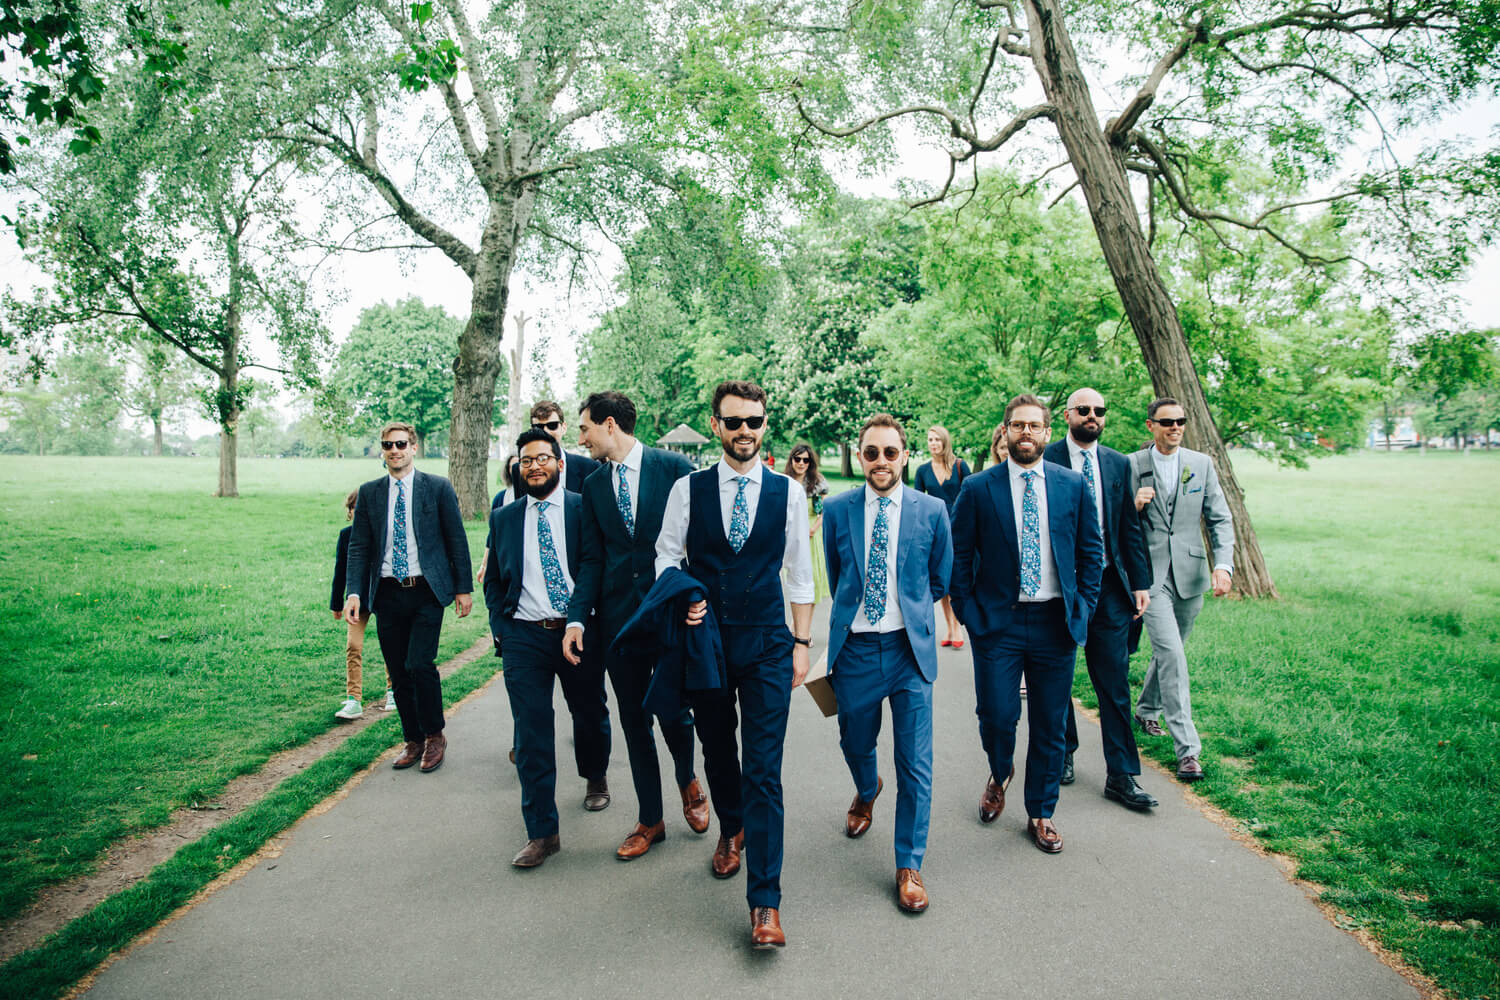 The lads, Quirky Venue, Non-traditional wedding planner, London Wedding coordination, Bespoke weddings, Brixton Wedding, Informal,